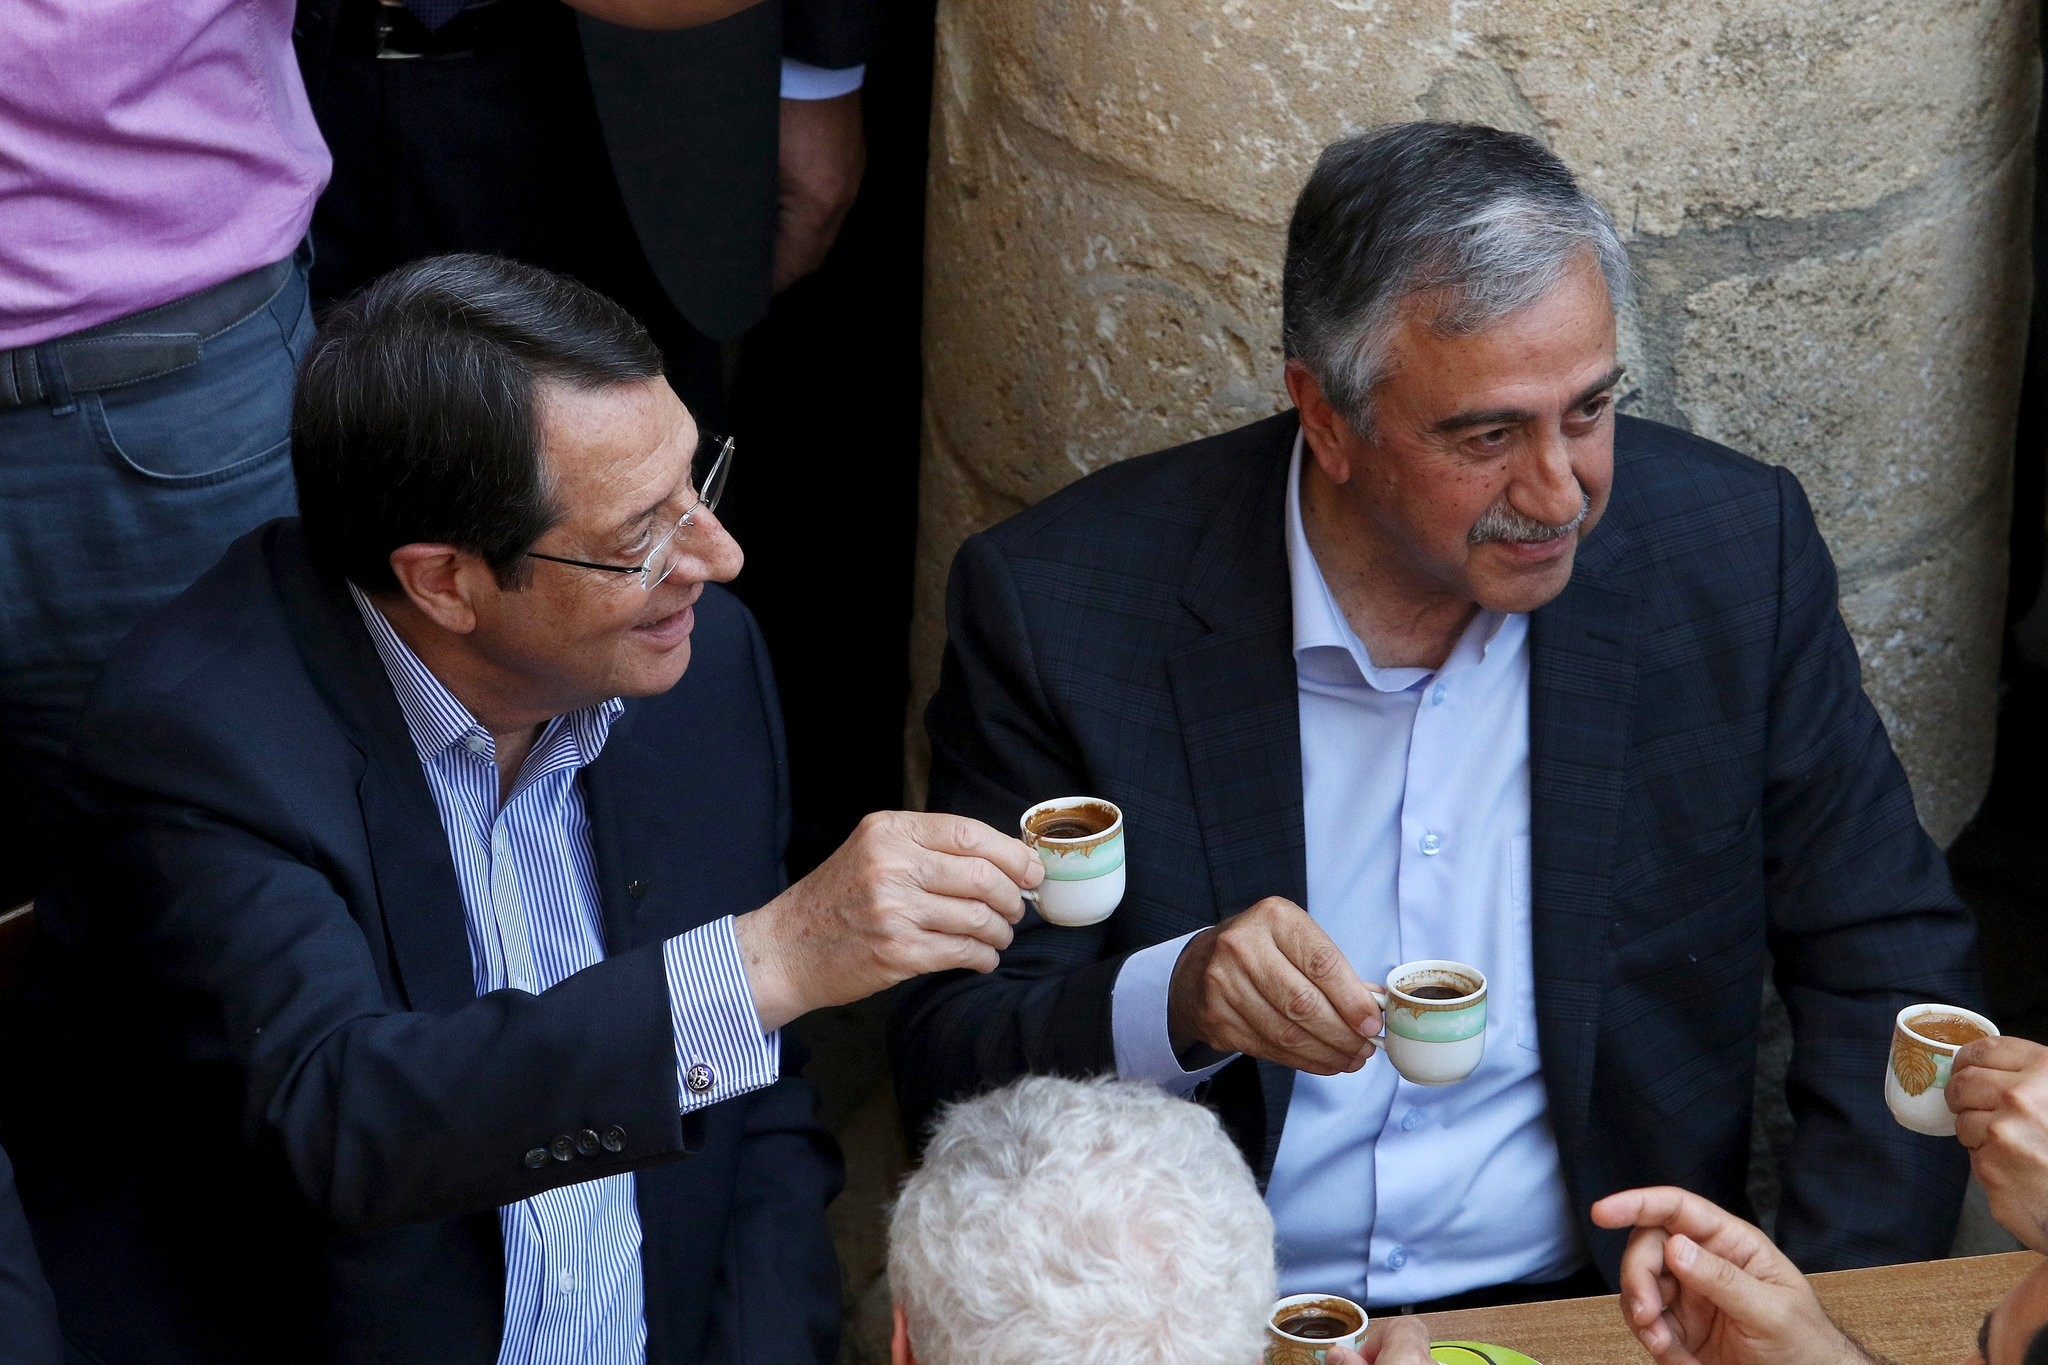 Turkish Cypriot leader Mustafa Akinci (R) and Greek Cypriot leader, Cypriot President Nicos Anastasiades, drink coffee in old Nicosia May 23, 2015. (REUTERS Photo)